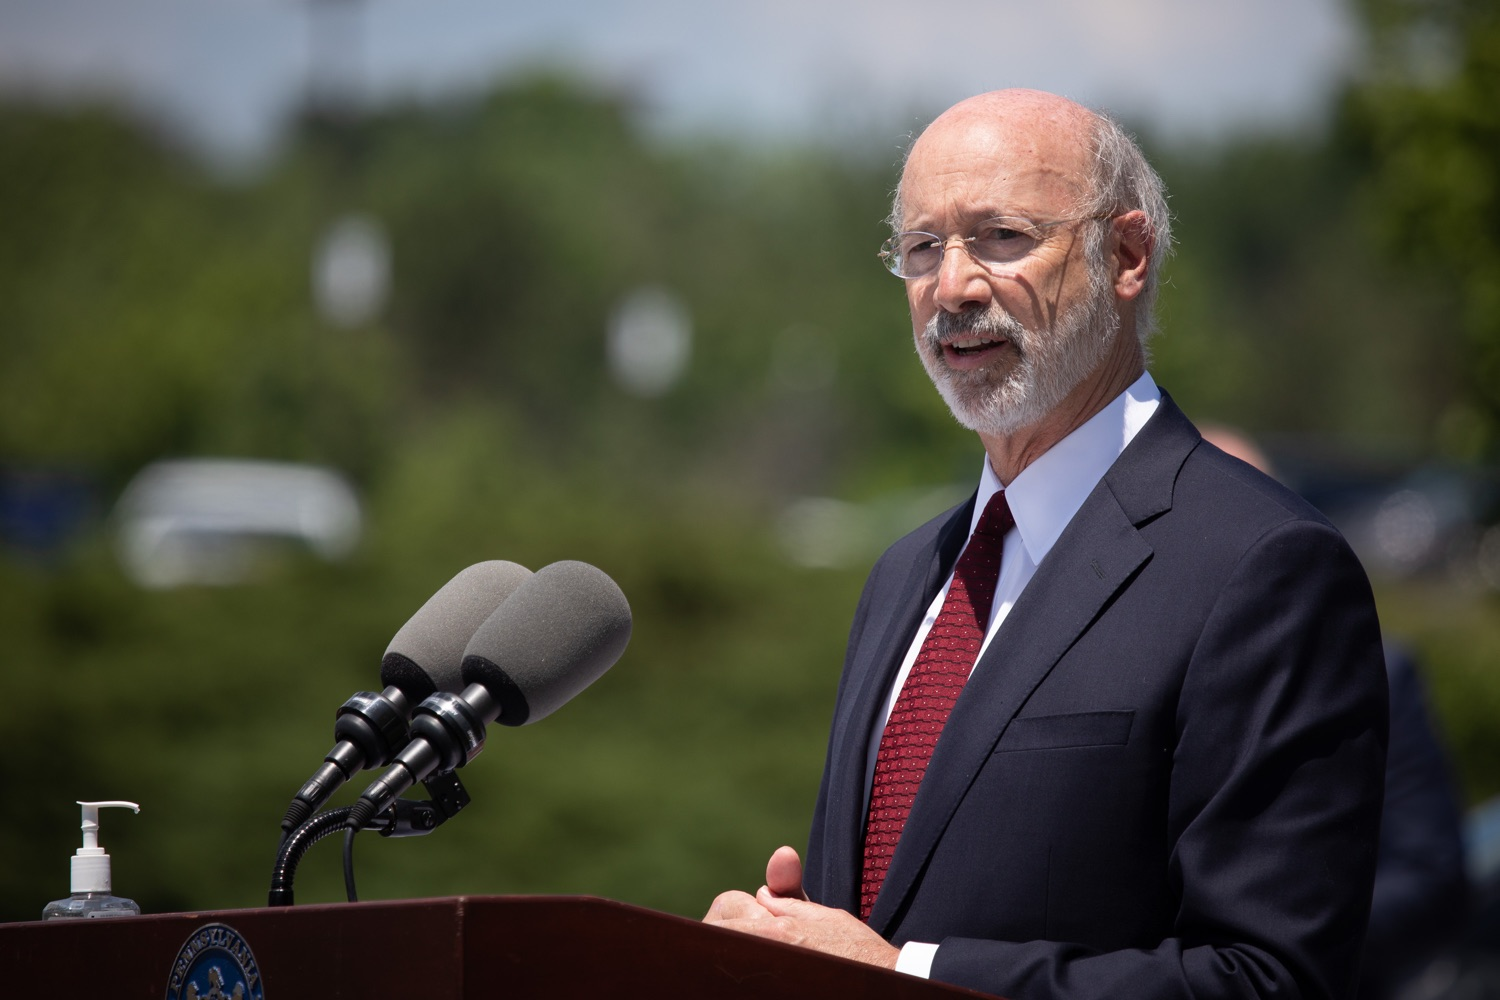 "<a href=""https://filesource.wostreaming.net/commonwealthofpa/photo/18101_gov_healthcare_dz_16.jpg"" target=""_blank"">⇣ Download Photo<br></a>Pennsylvania Governor Tom Wolf speaking at UPMC Pinnacle Community Osteopathic.As health care professionals work the front lines of the COVID-19 pandemic and the commonwealth continues to emphasize the importance of mask-wearing and social distancing to protect all, Governor Tom Wolf today visited UPMC Pinnacle Community Osteopathic Hospital in Harrisburg to thank staff and stress why mask-wearing is a necessary requirement to fight the spread of COVID-19.    Harrisburg, PA  June 29, 2020"